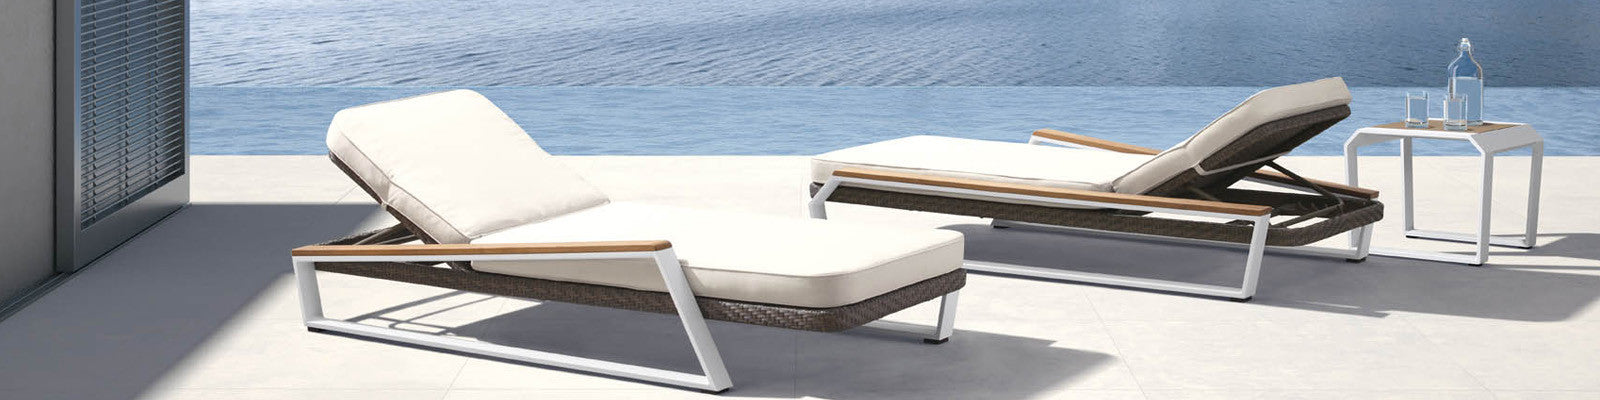 Outdoor Chaise Lounges | OROA - Luxury Outdoor Furniture Online